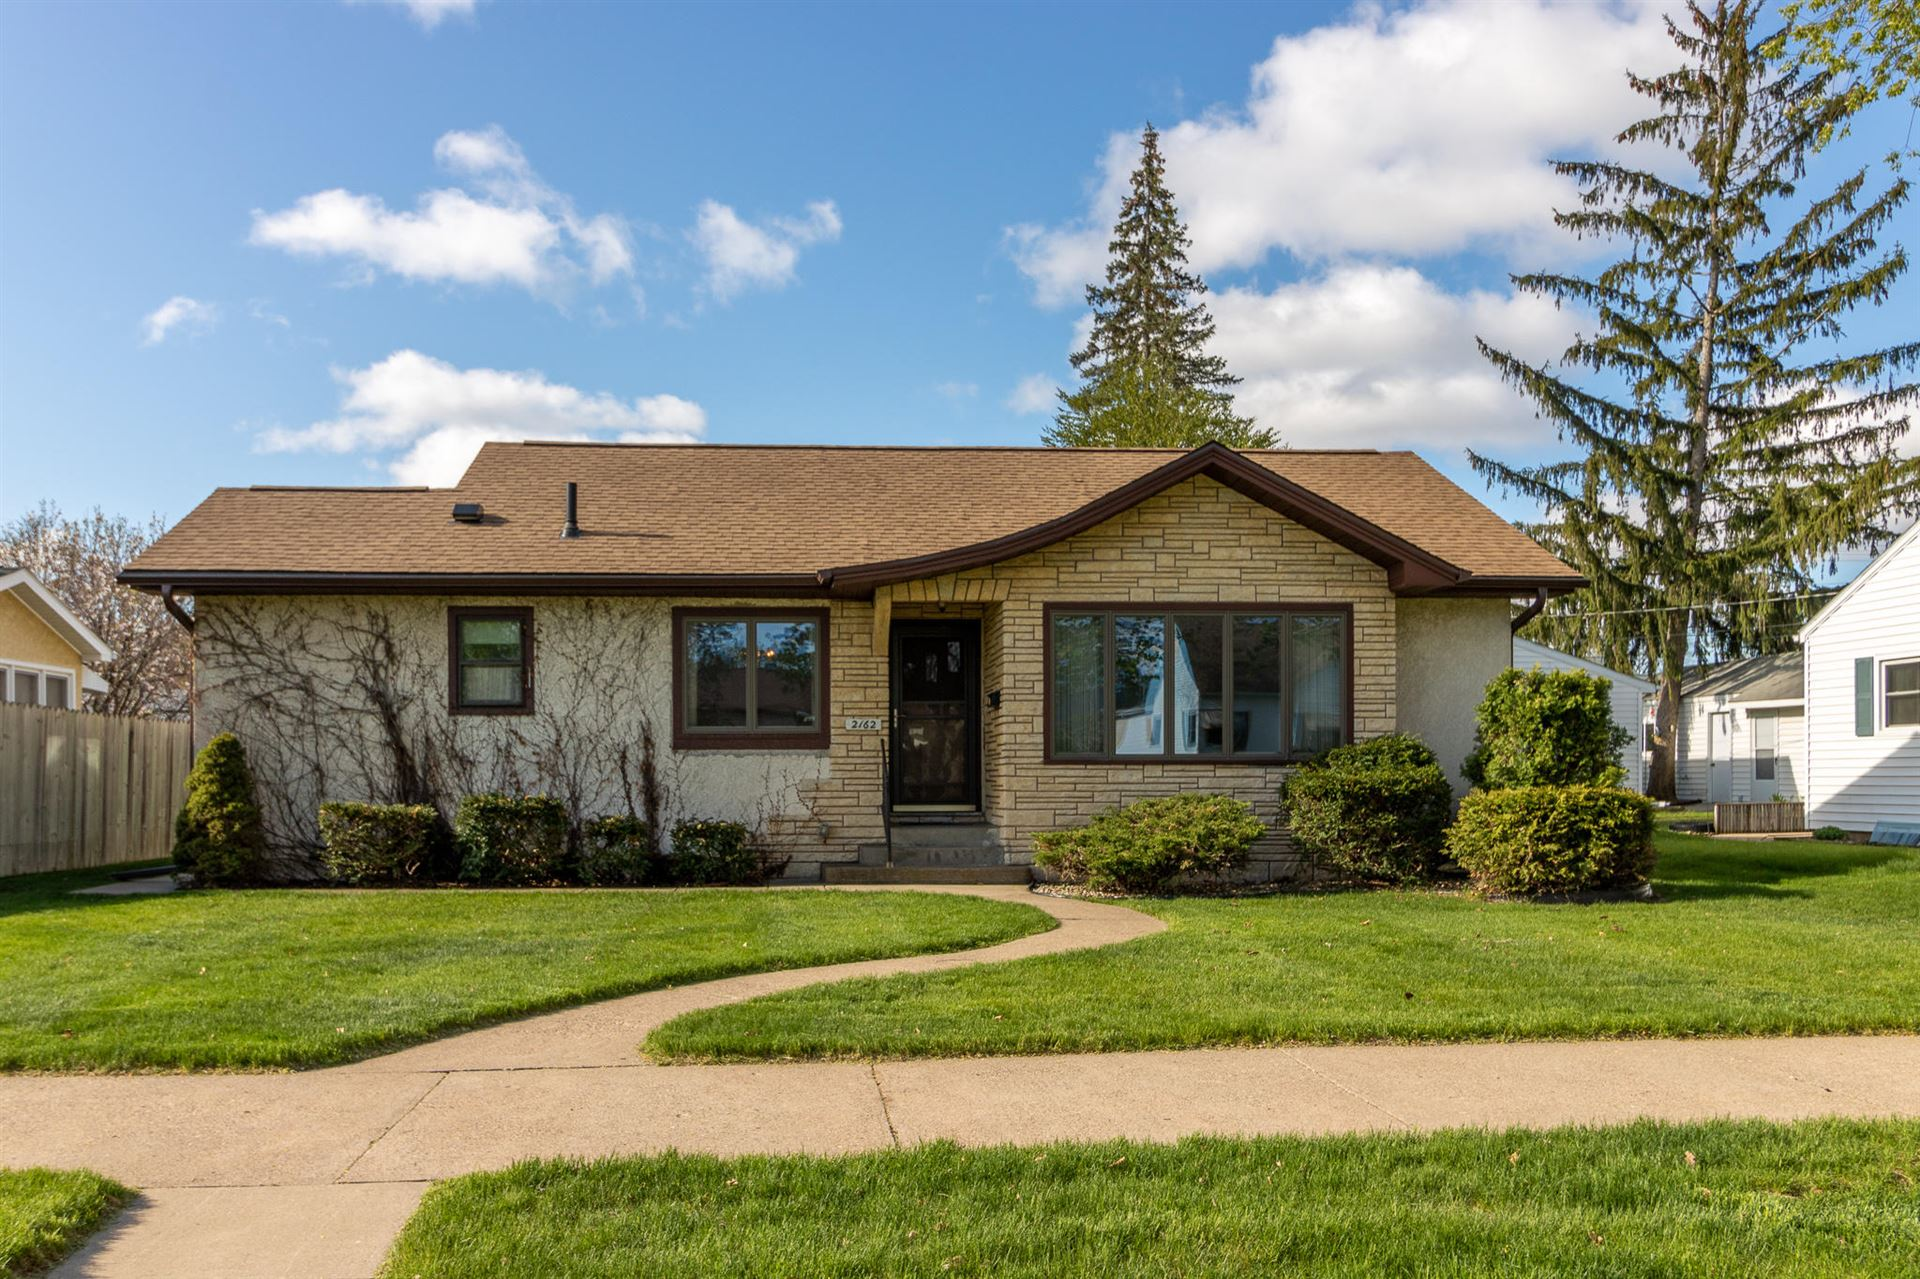 2162 Redfield St, La Crosse, WI 54601 - MLS#: 1688211